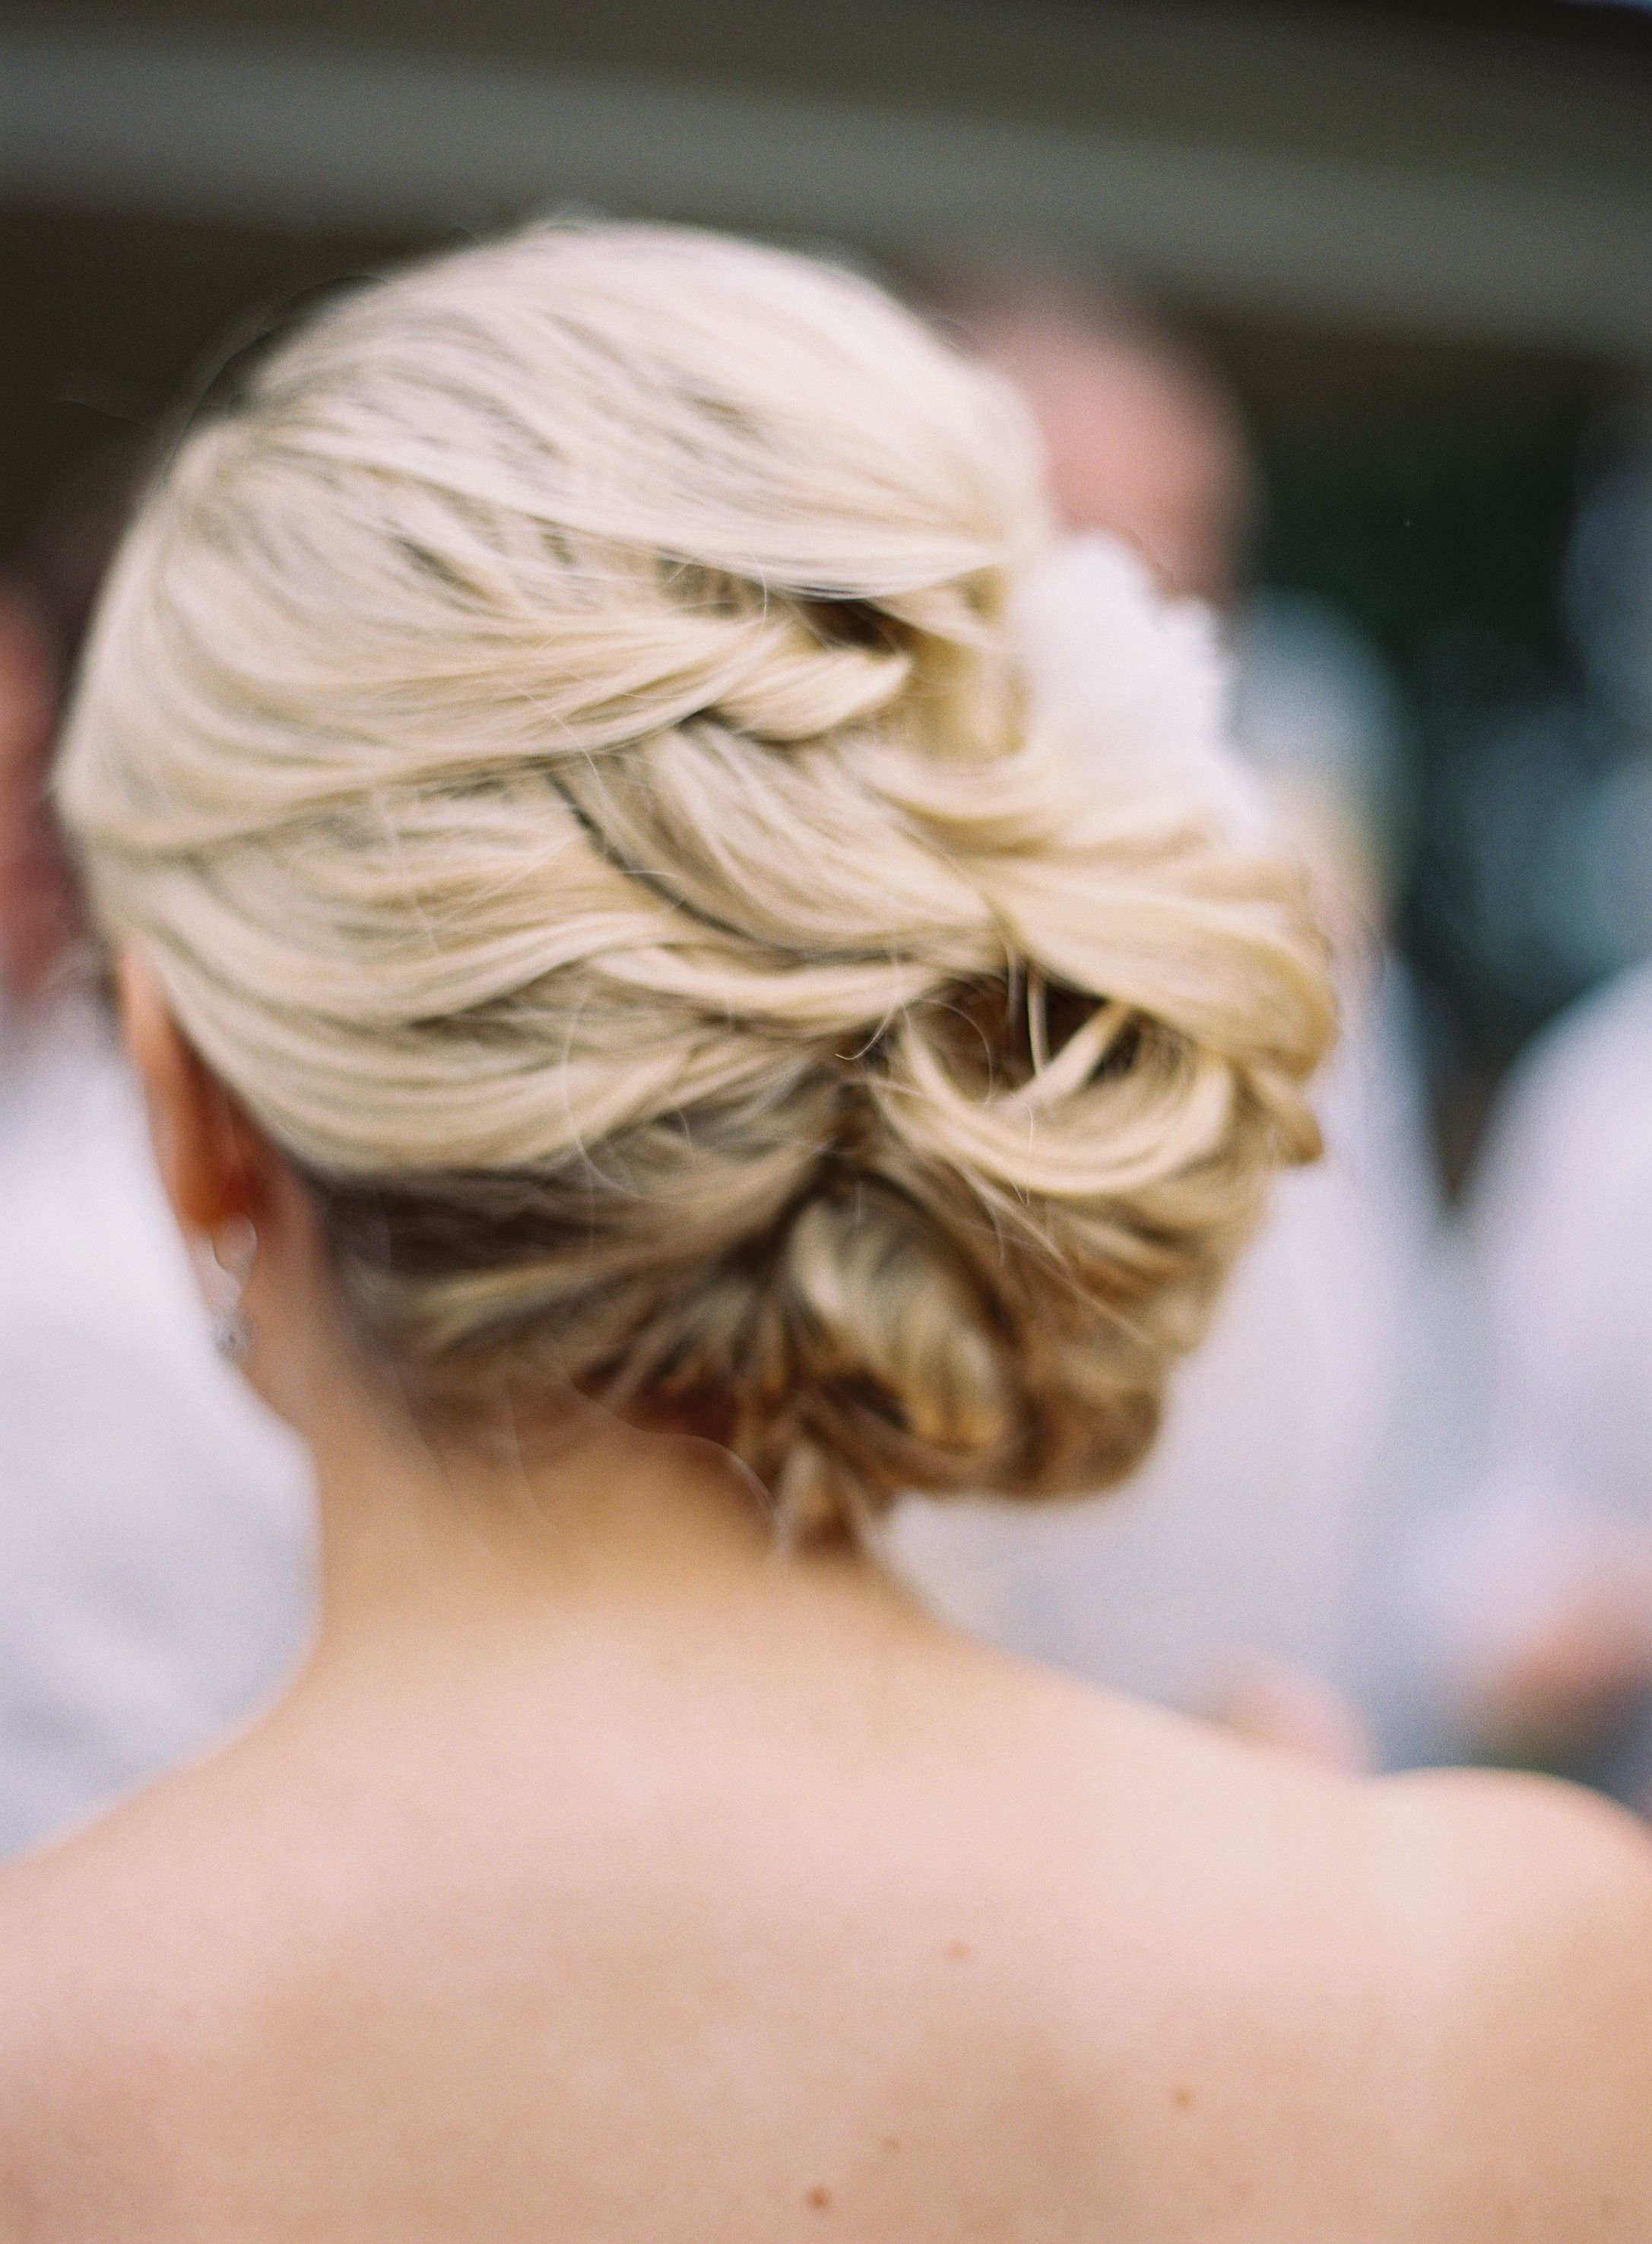 #hairstyles  Photography: Eric Kelley Photography - erickelleyphotography.com  Read More: http://www.stylemepretty.com/2014/03/27/preppy-striped-charlottesville-wedding/